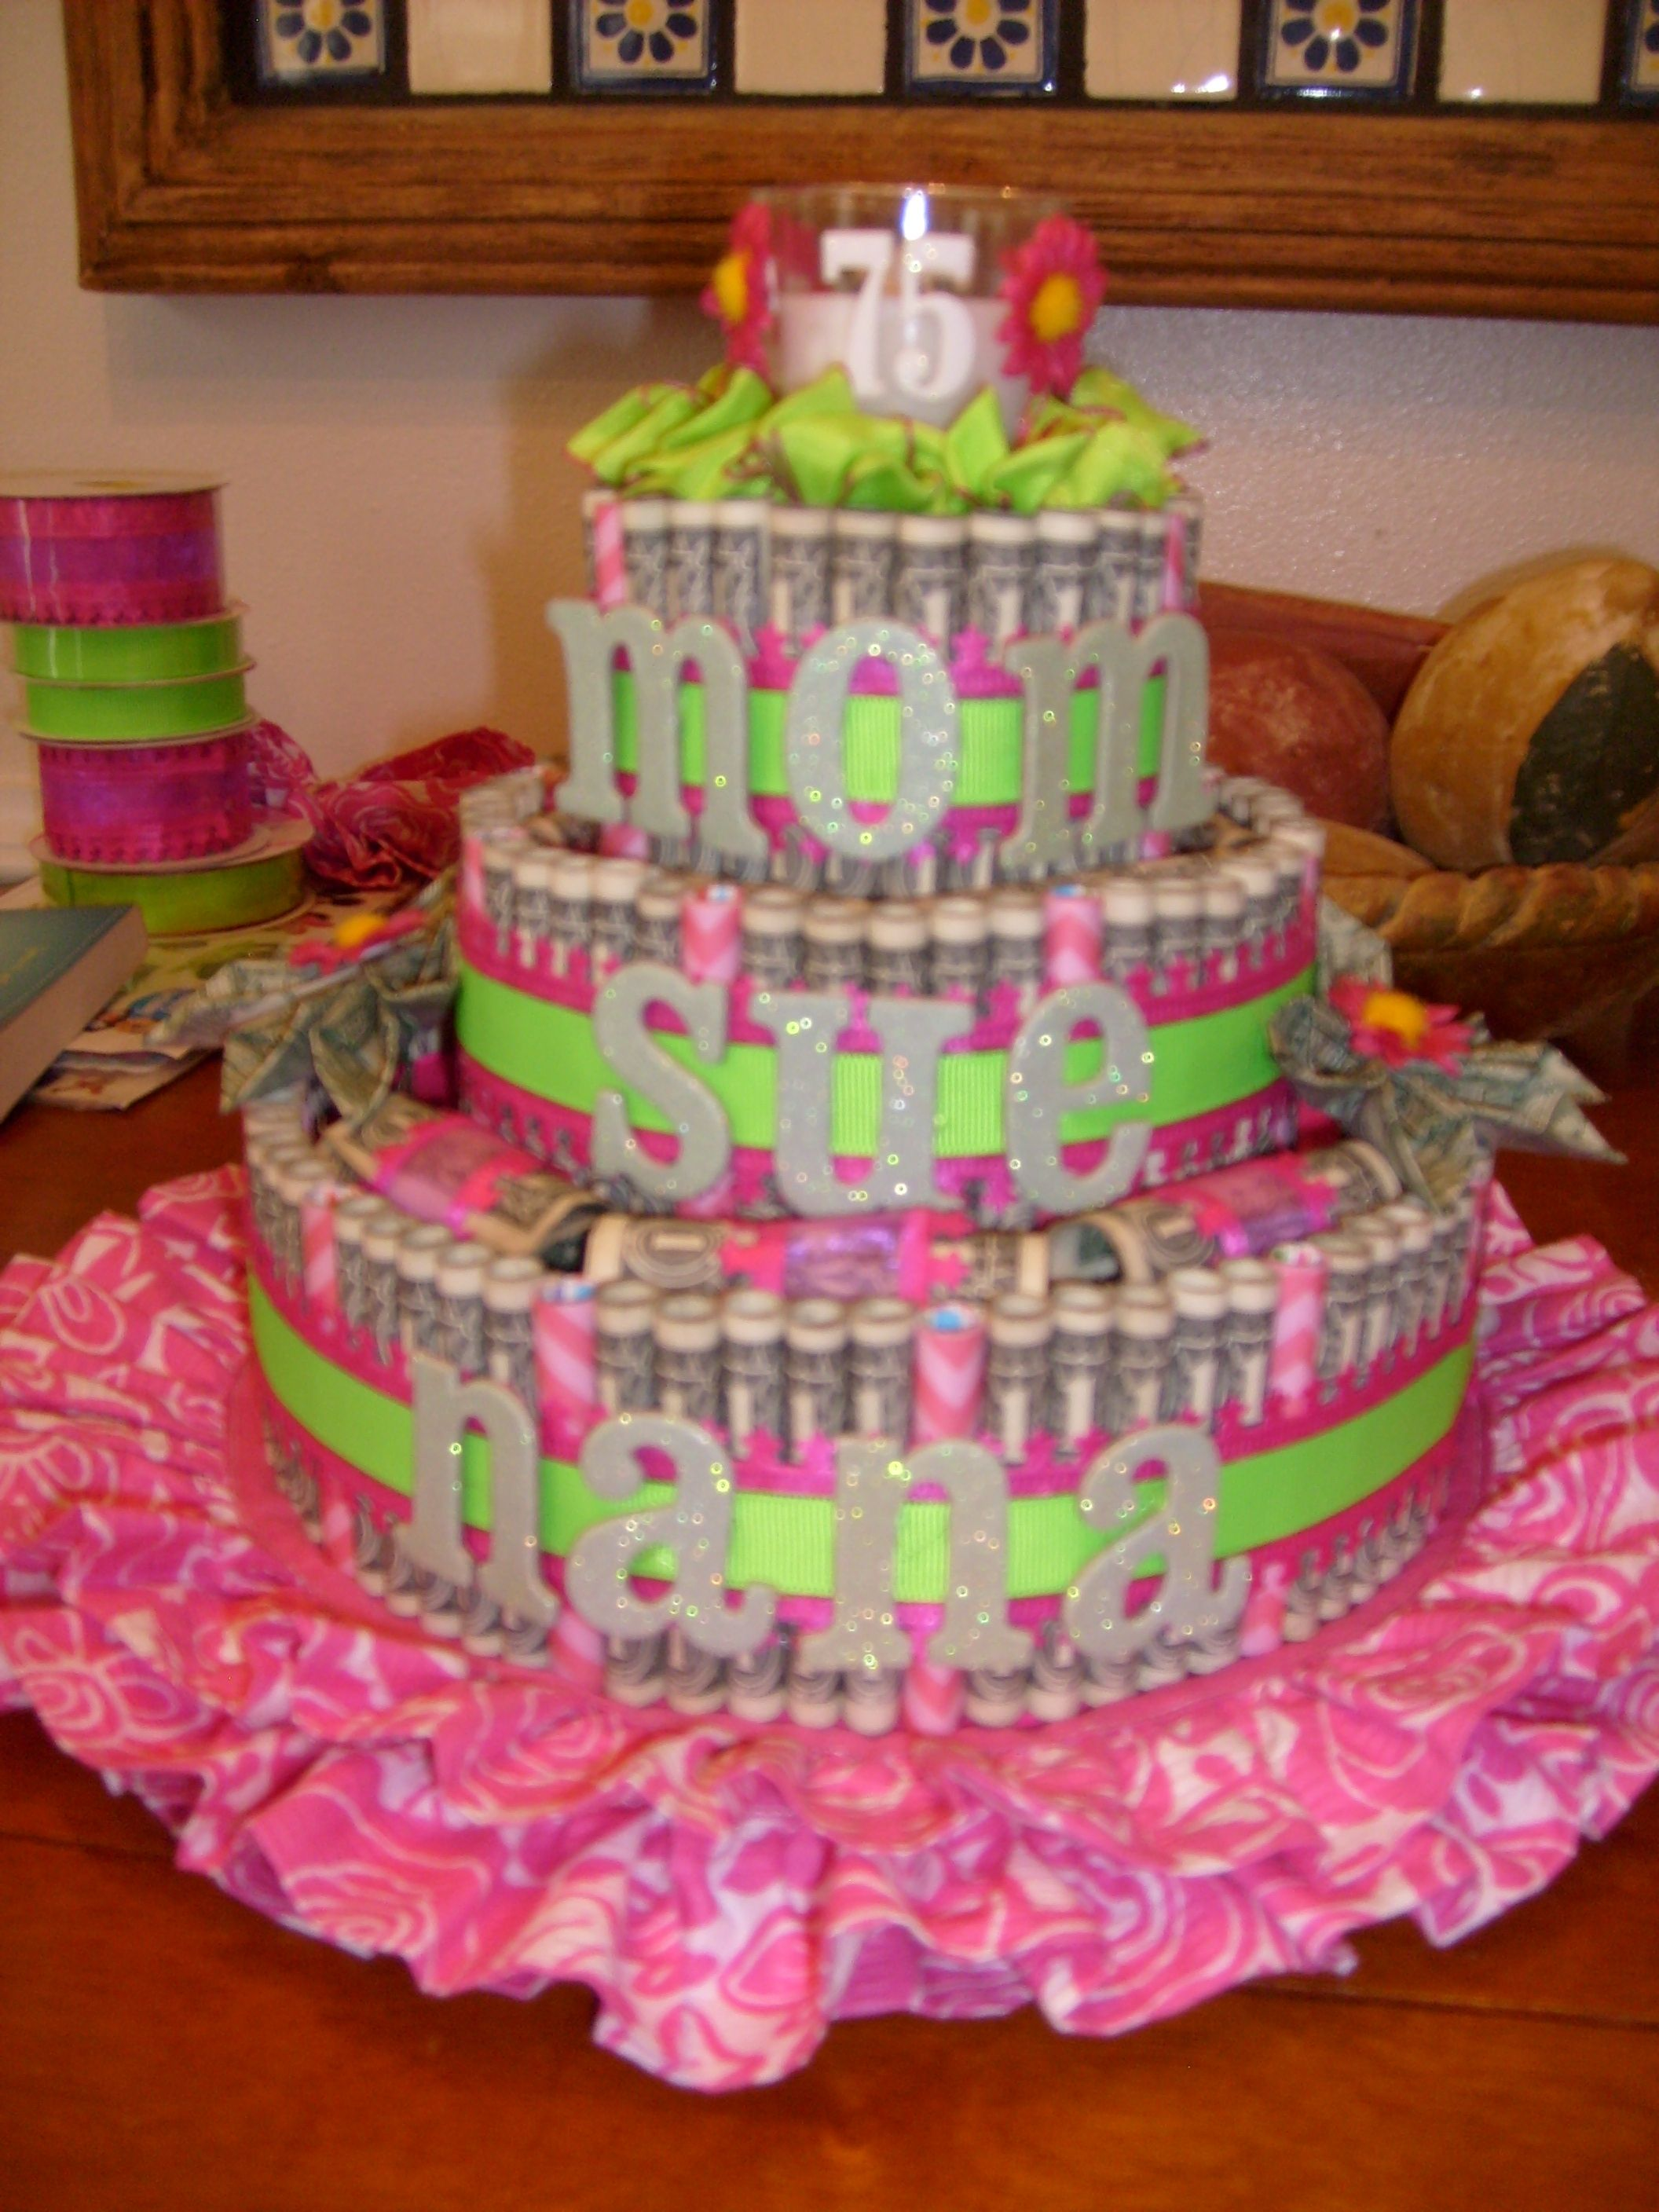 The Birthday Money Cake I Made For Moms 75th Contained 160